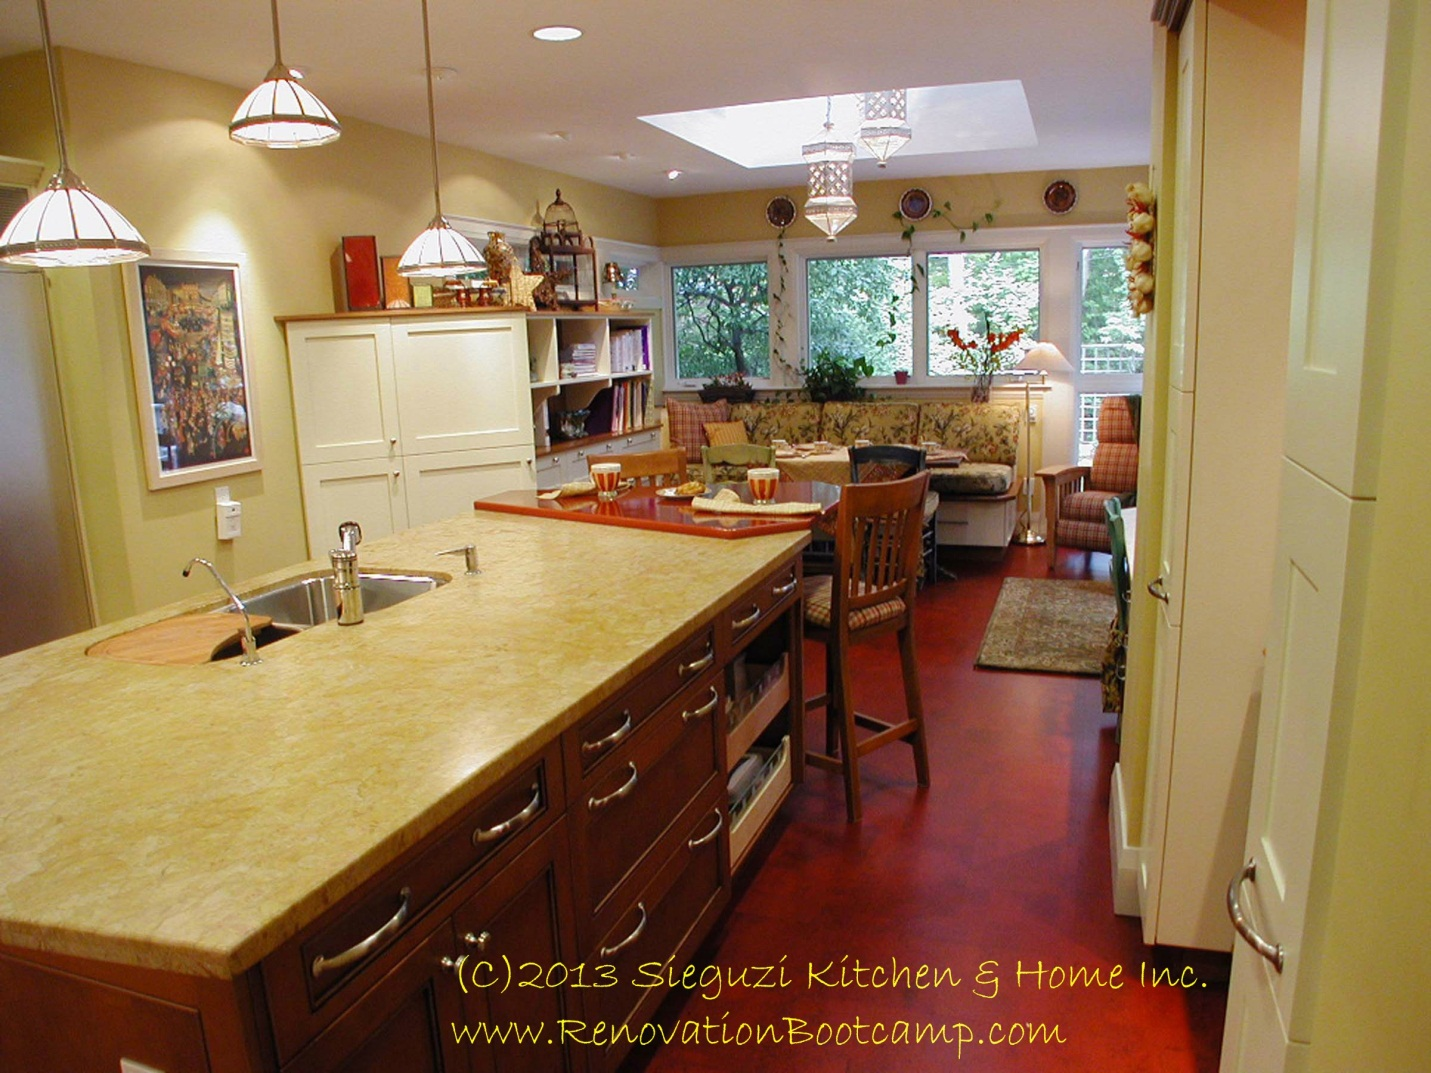 grounded part 4 in the series on residential flooring its a cork walk cork kitchen flooring my kitchen floor